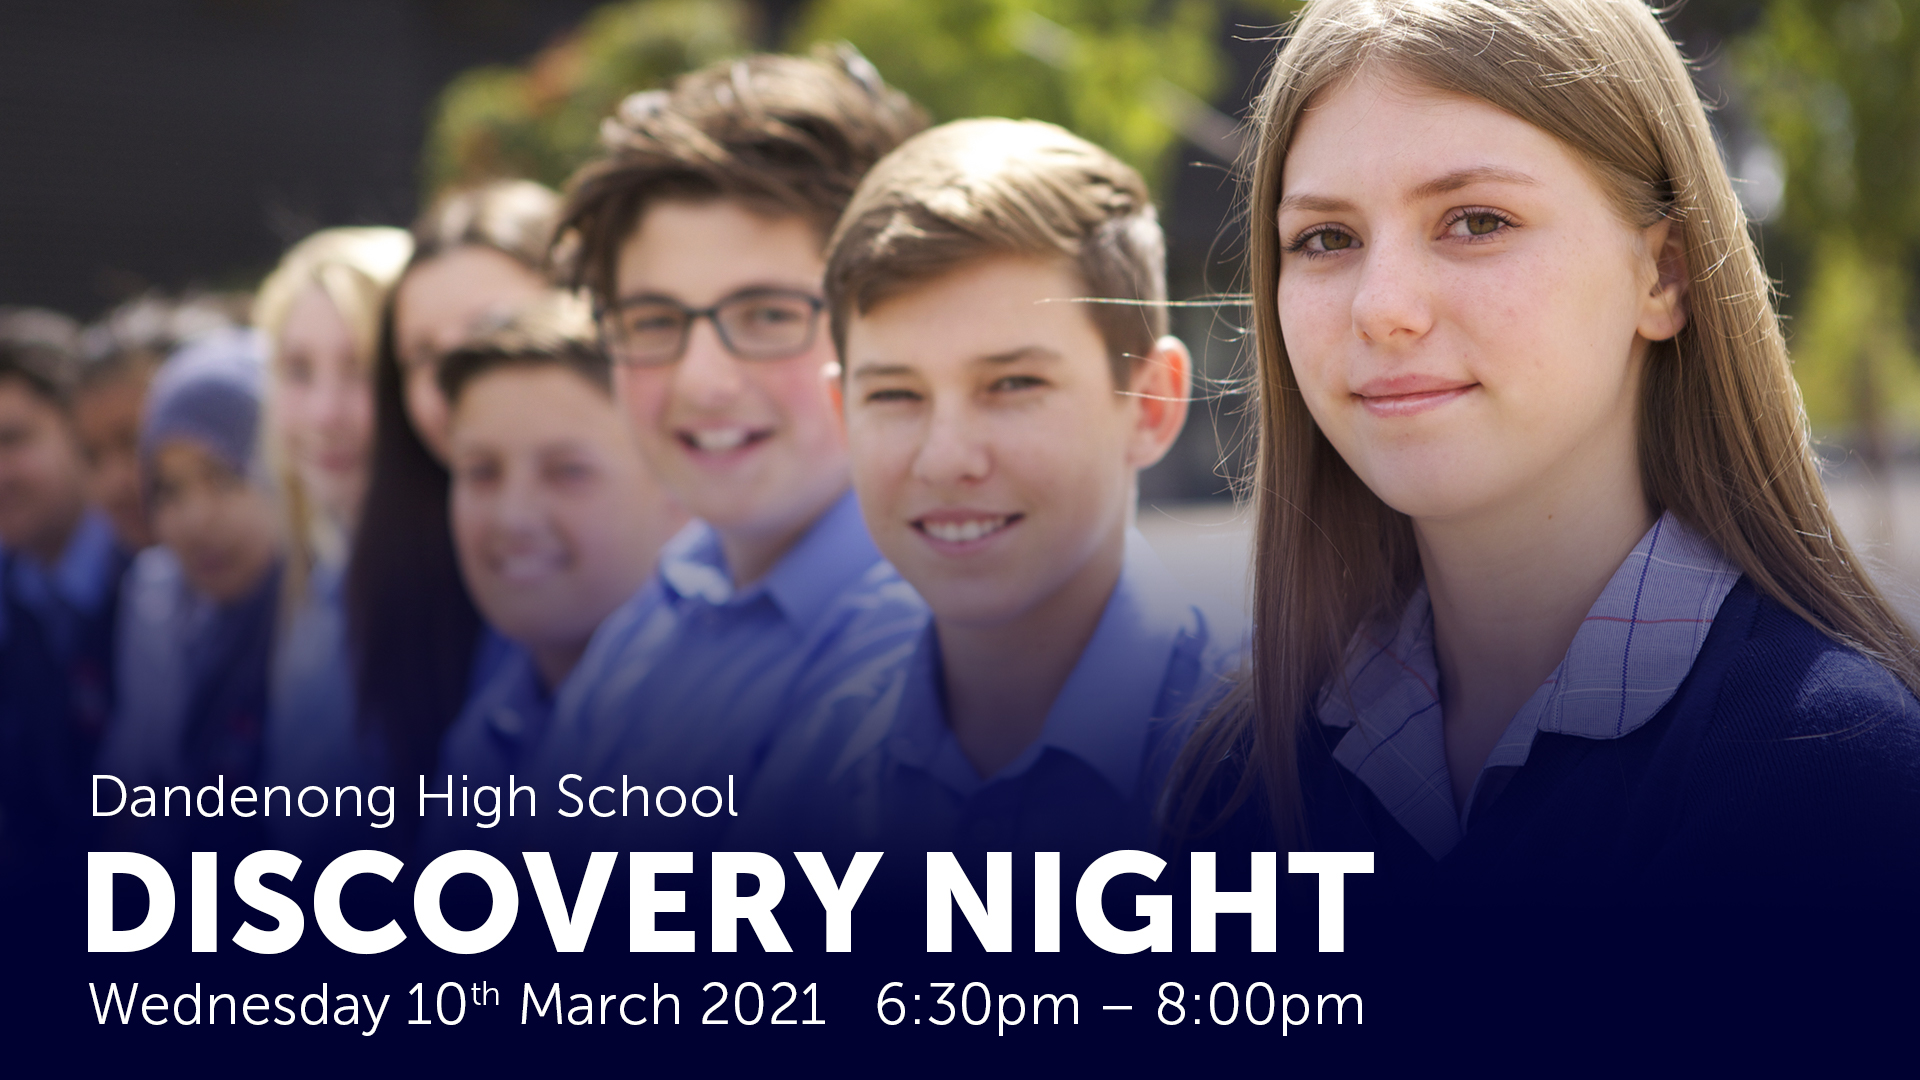 Discover Dandenong High School at our Discovery Night - 10th March 2021